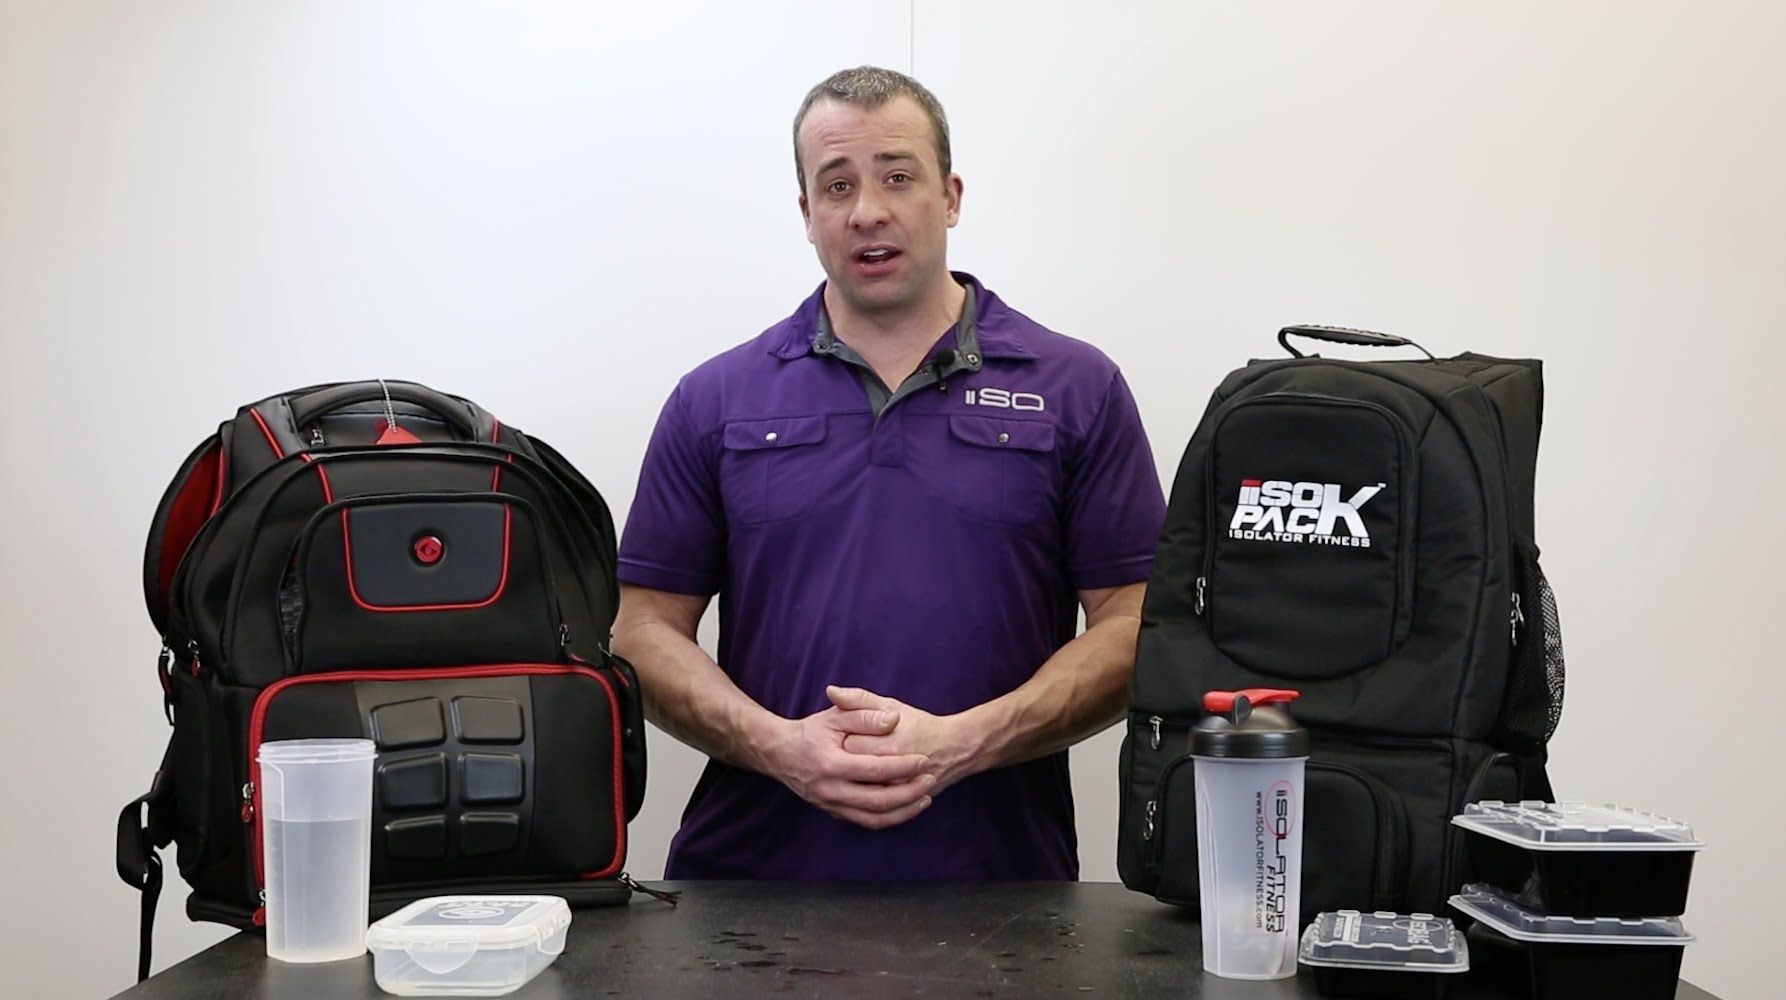 6058e8e5cab1 Great video comparing the Isolator Fitness Isopack vs 6 Pack Elite Voyager